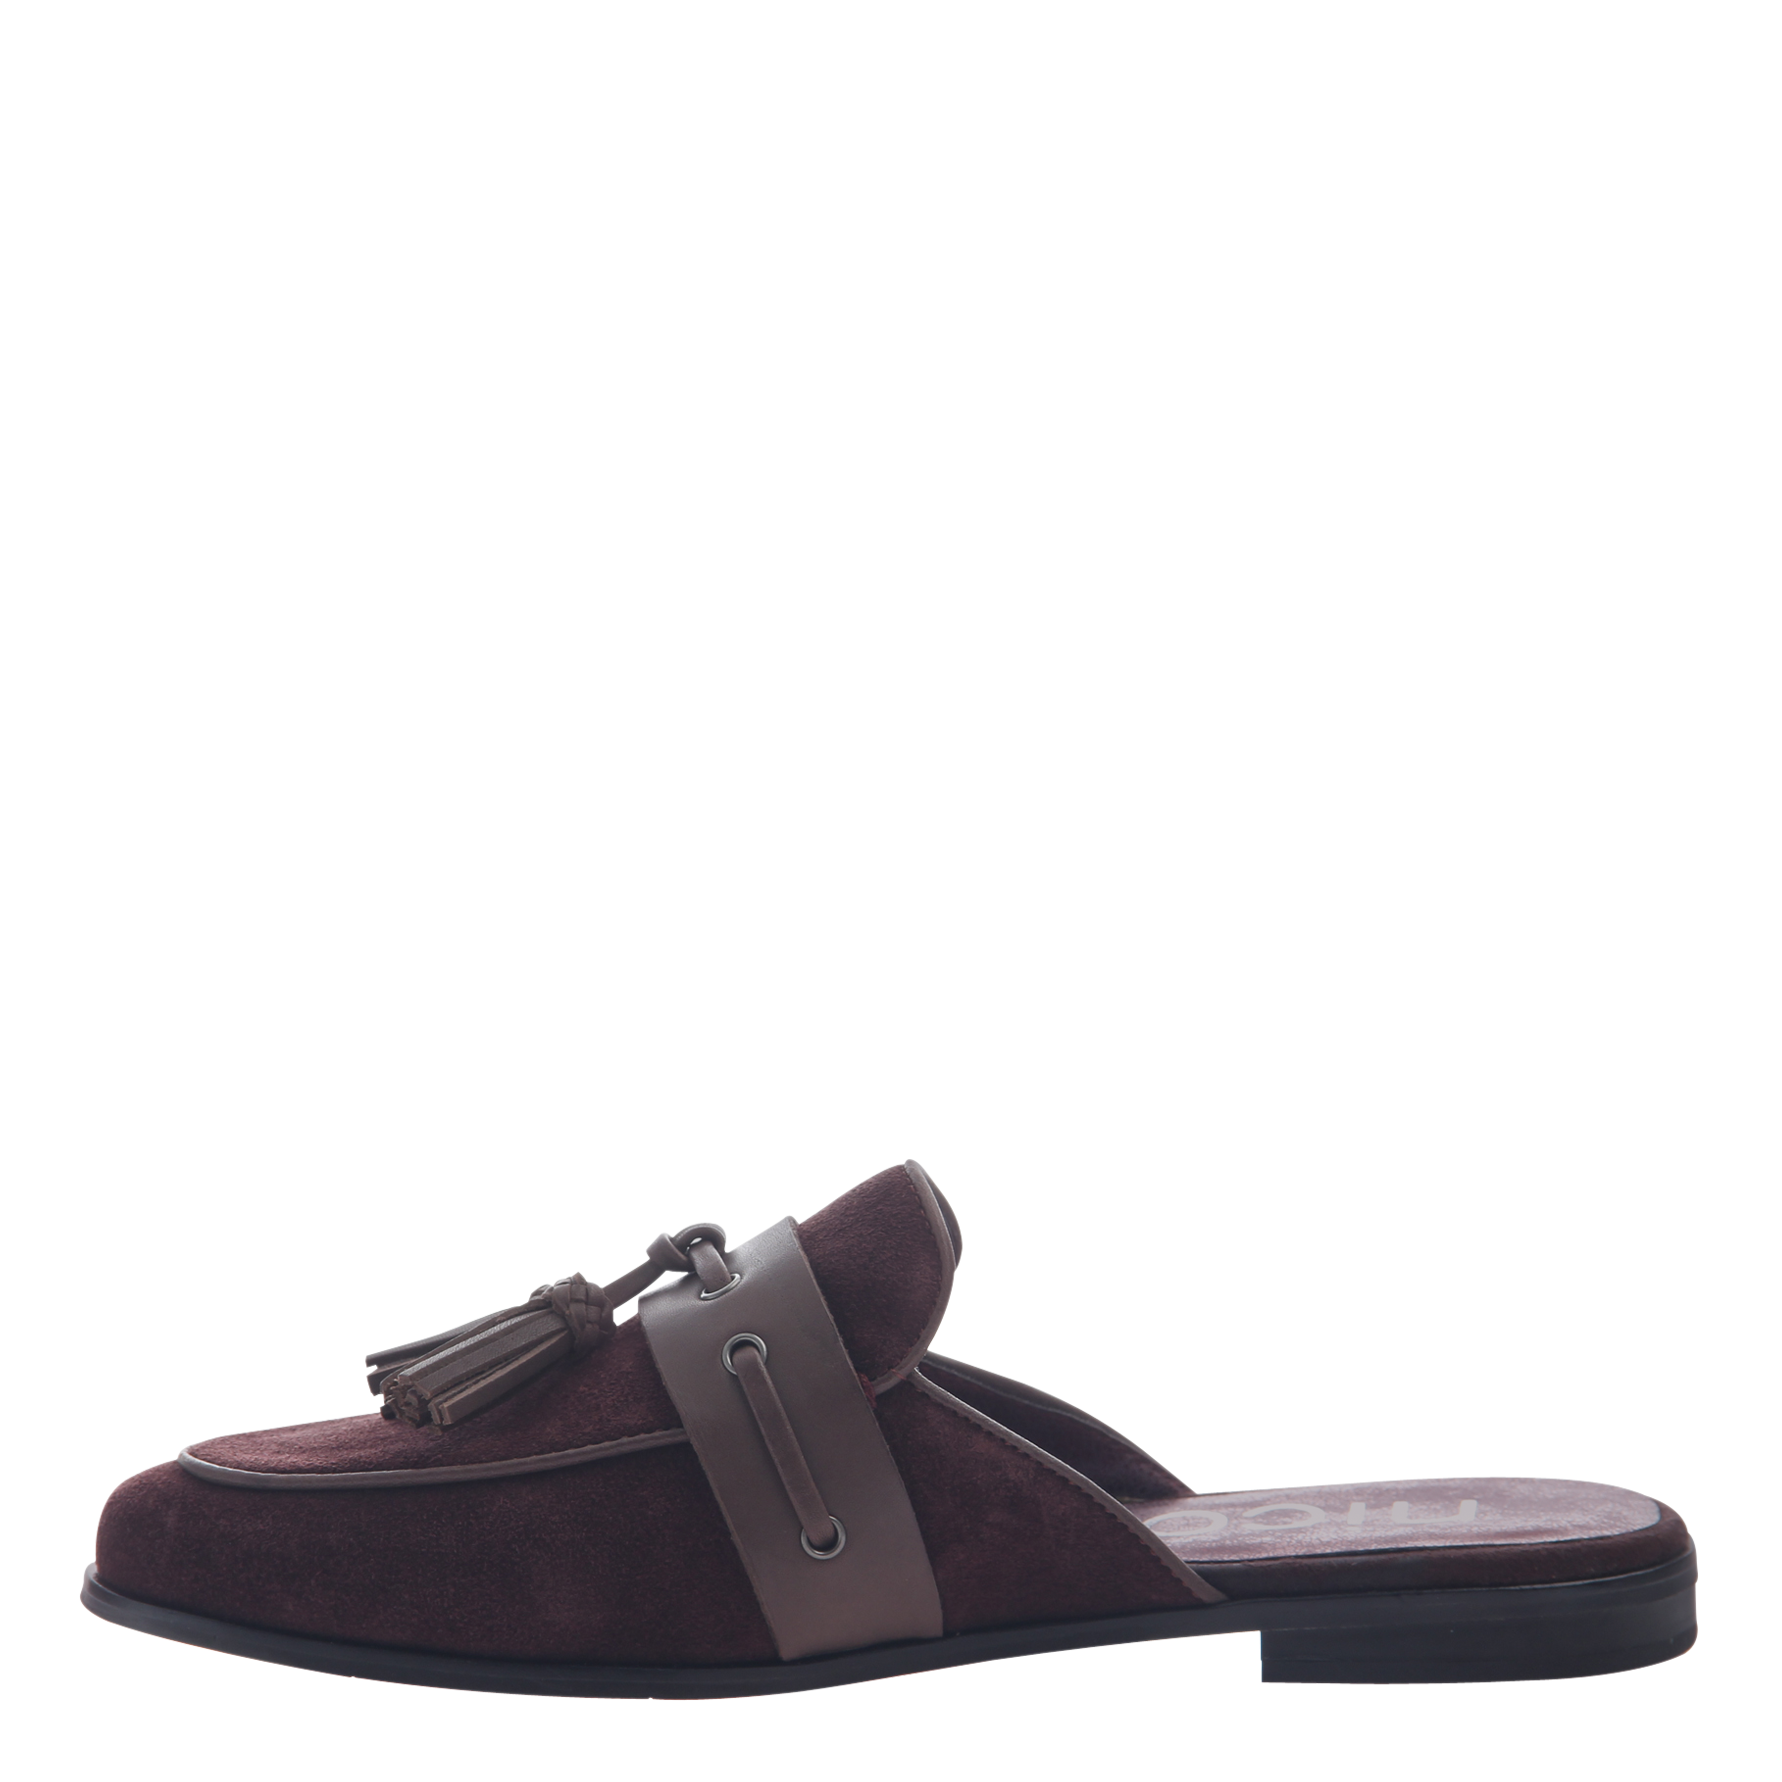 Womens slip on loafer Yulia in burgundy inside view